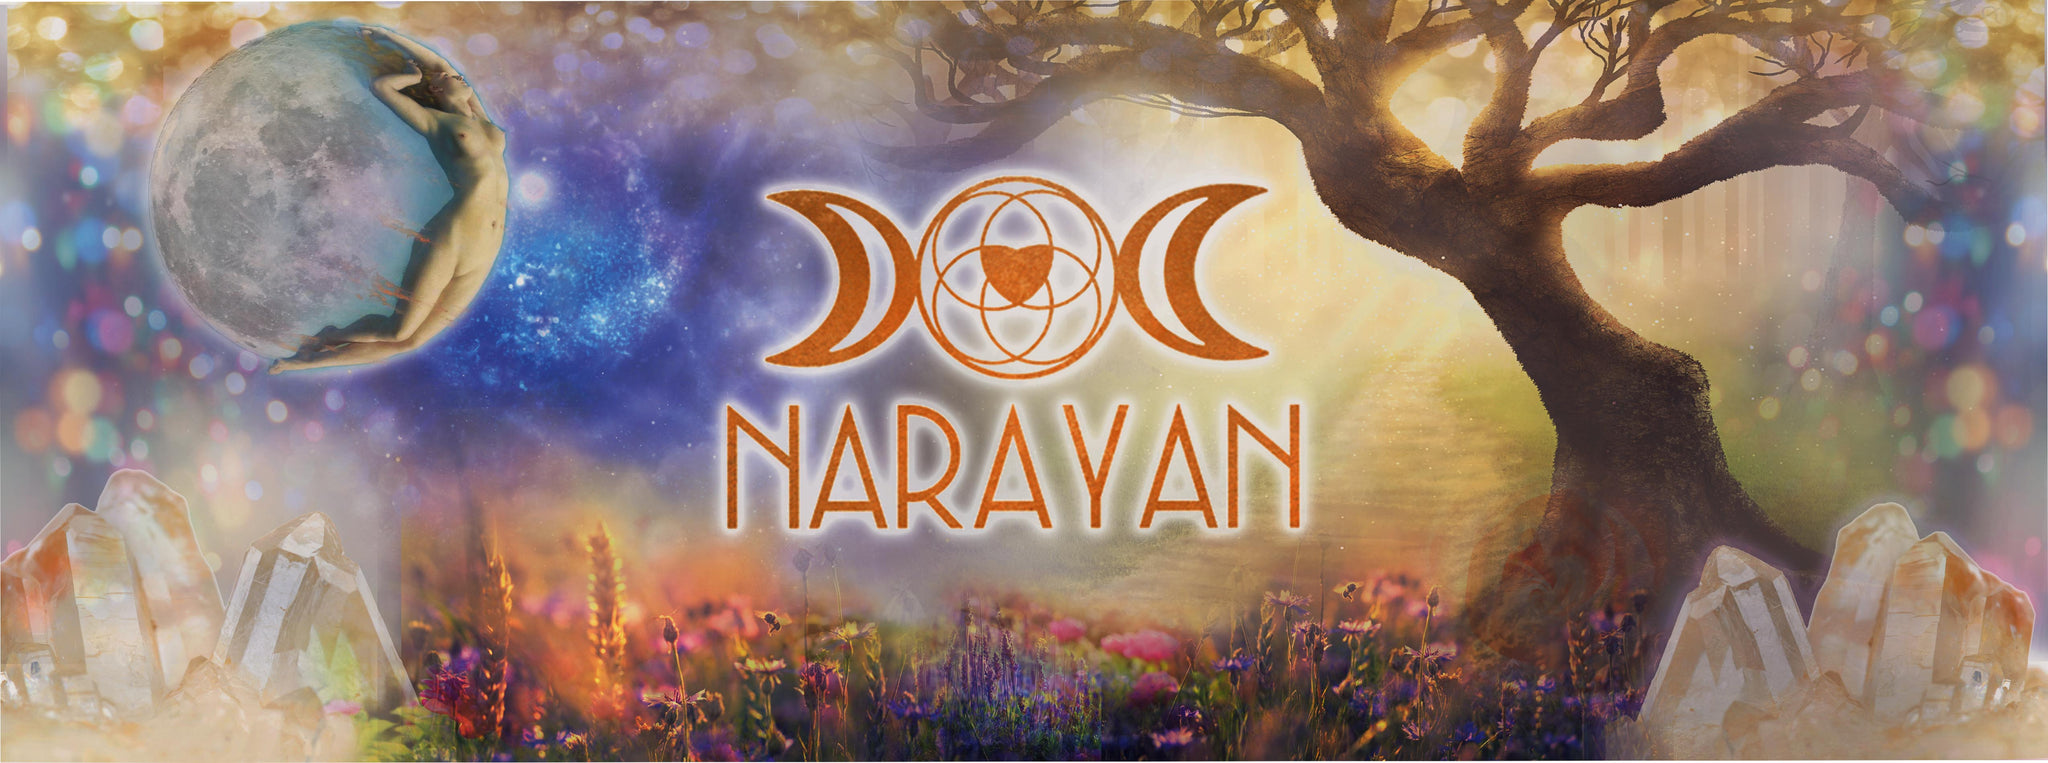 GOLD HYDROSOUL~ fresh organic distillations from Narayans garden